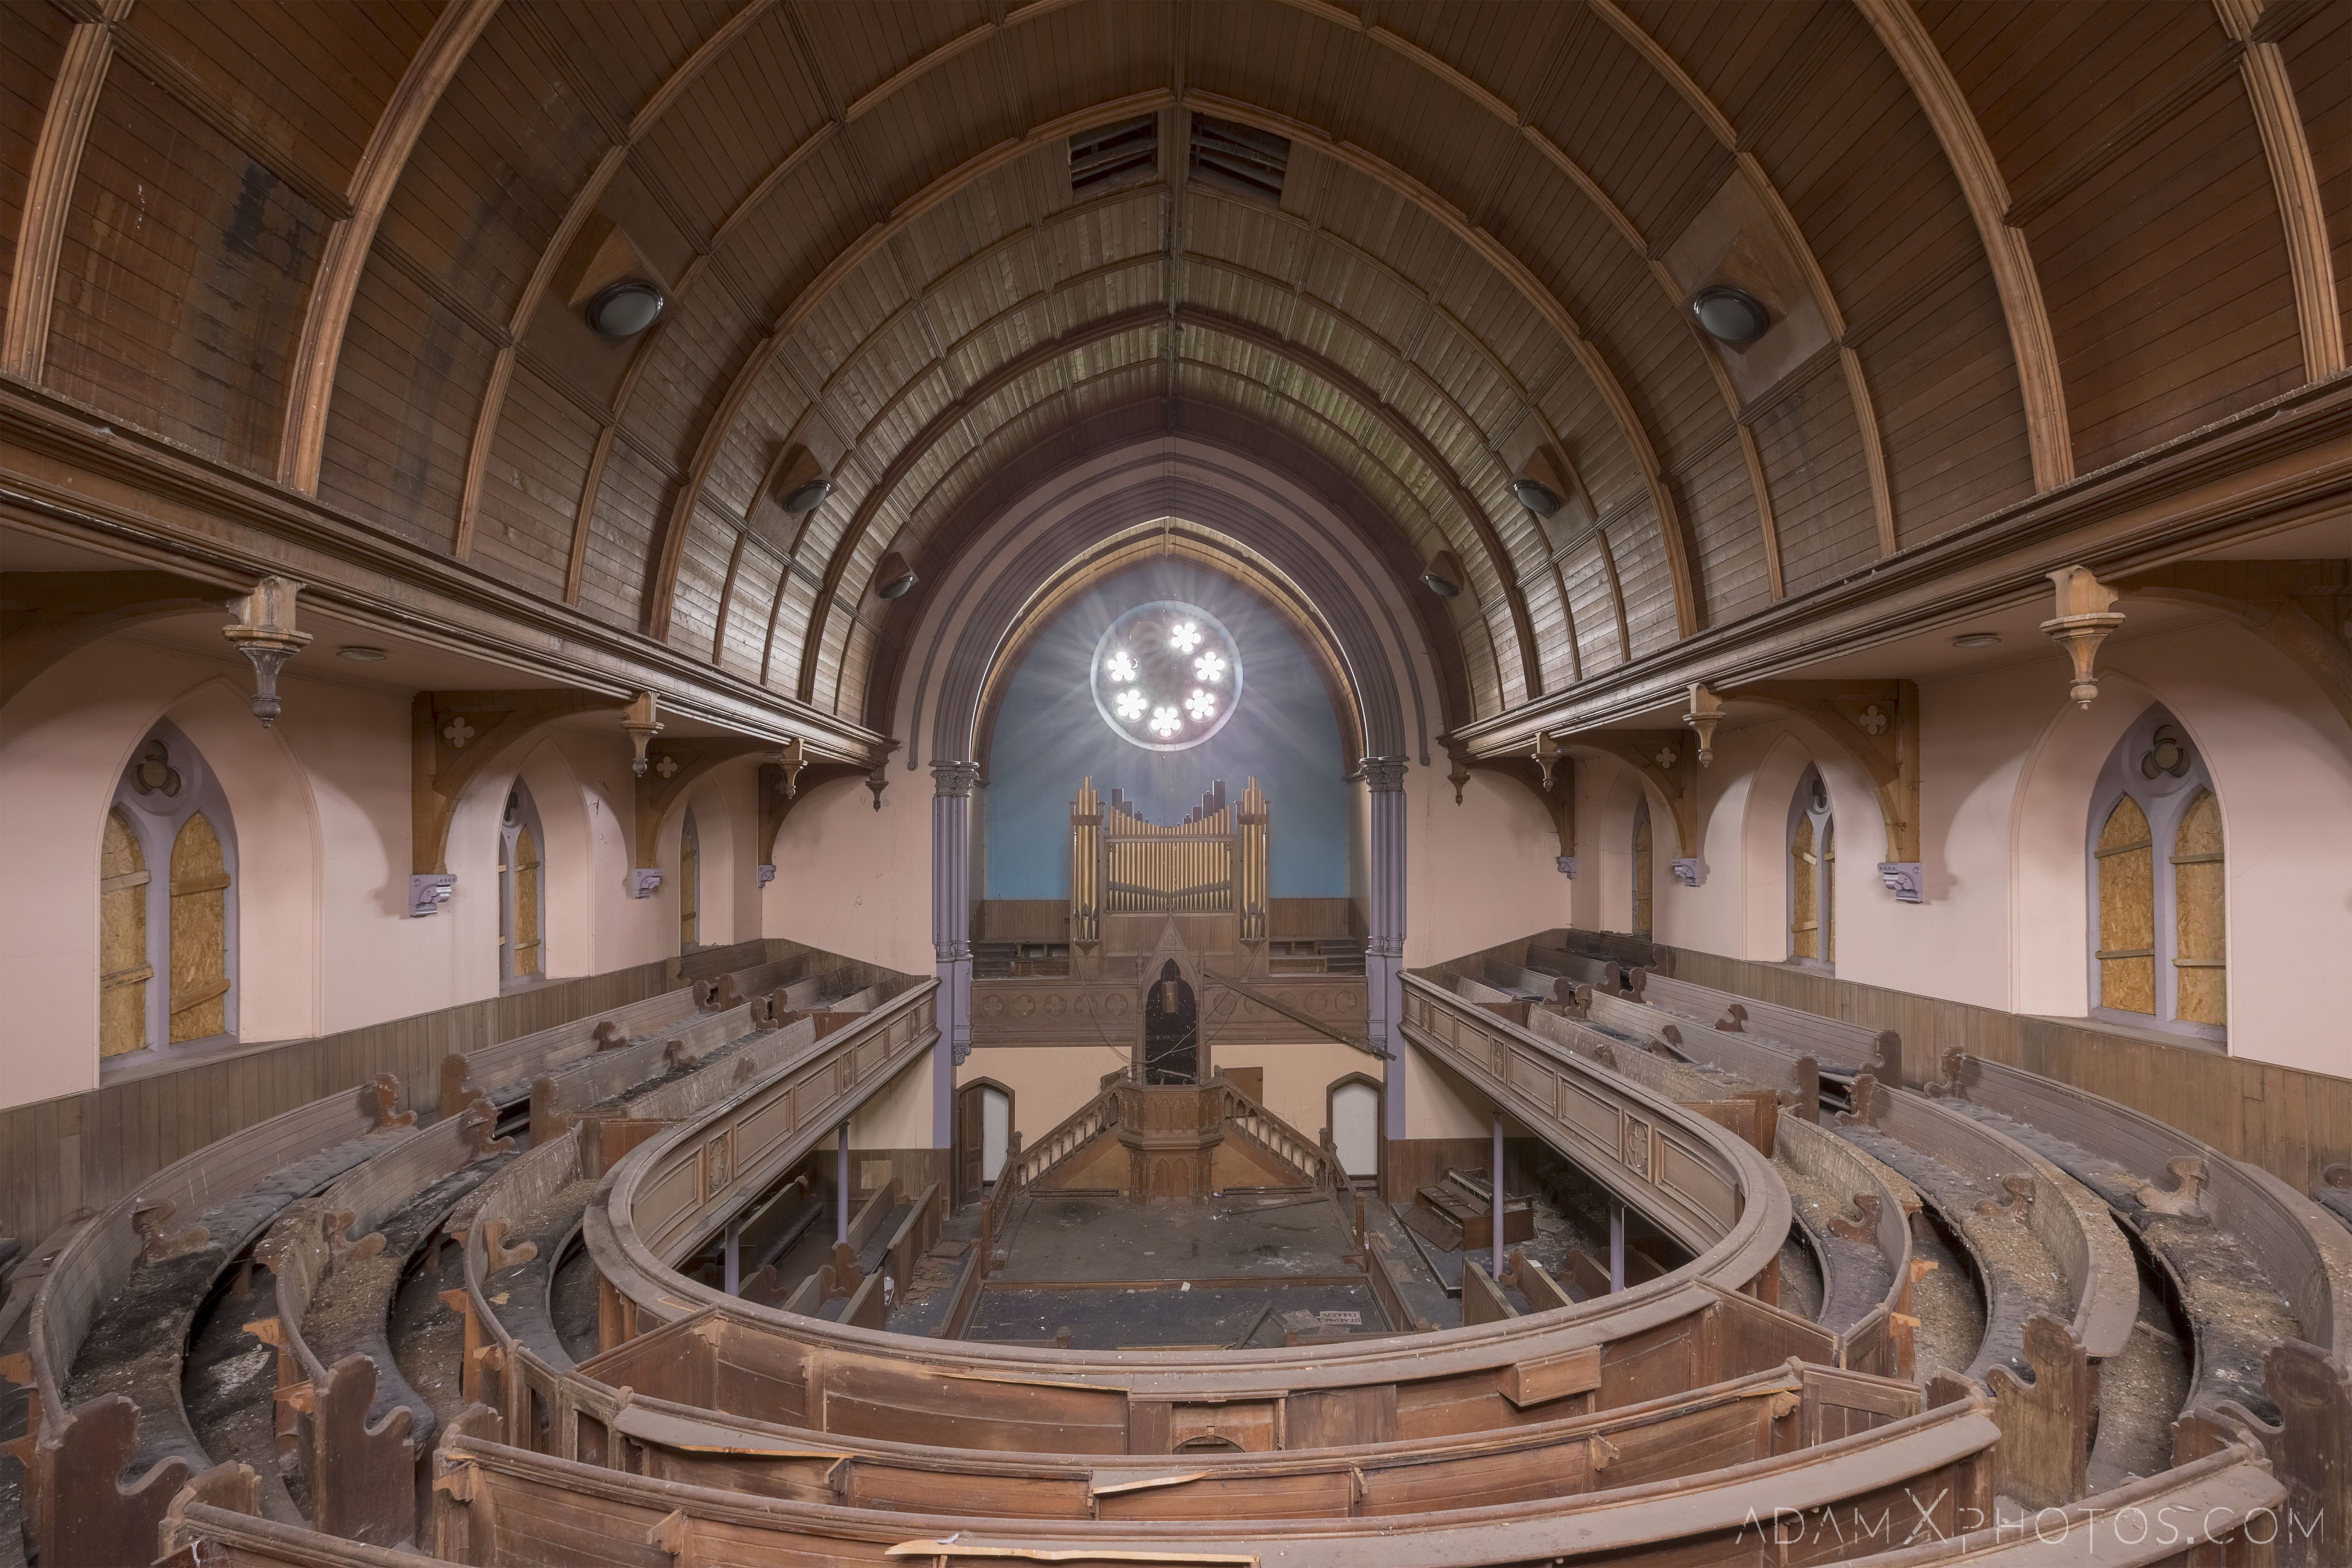 Organ pulpit Main Hall stained glass windows wooden balcony pews St Aidan's Church Galashiels Scotland Circle Church Adam X Urbex Urban Exploration Access 2018 Abandoned decay ruins lost forgotten derelict location creepy haunting eerie